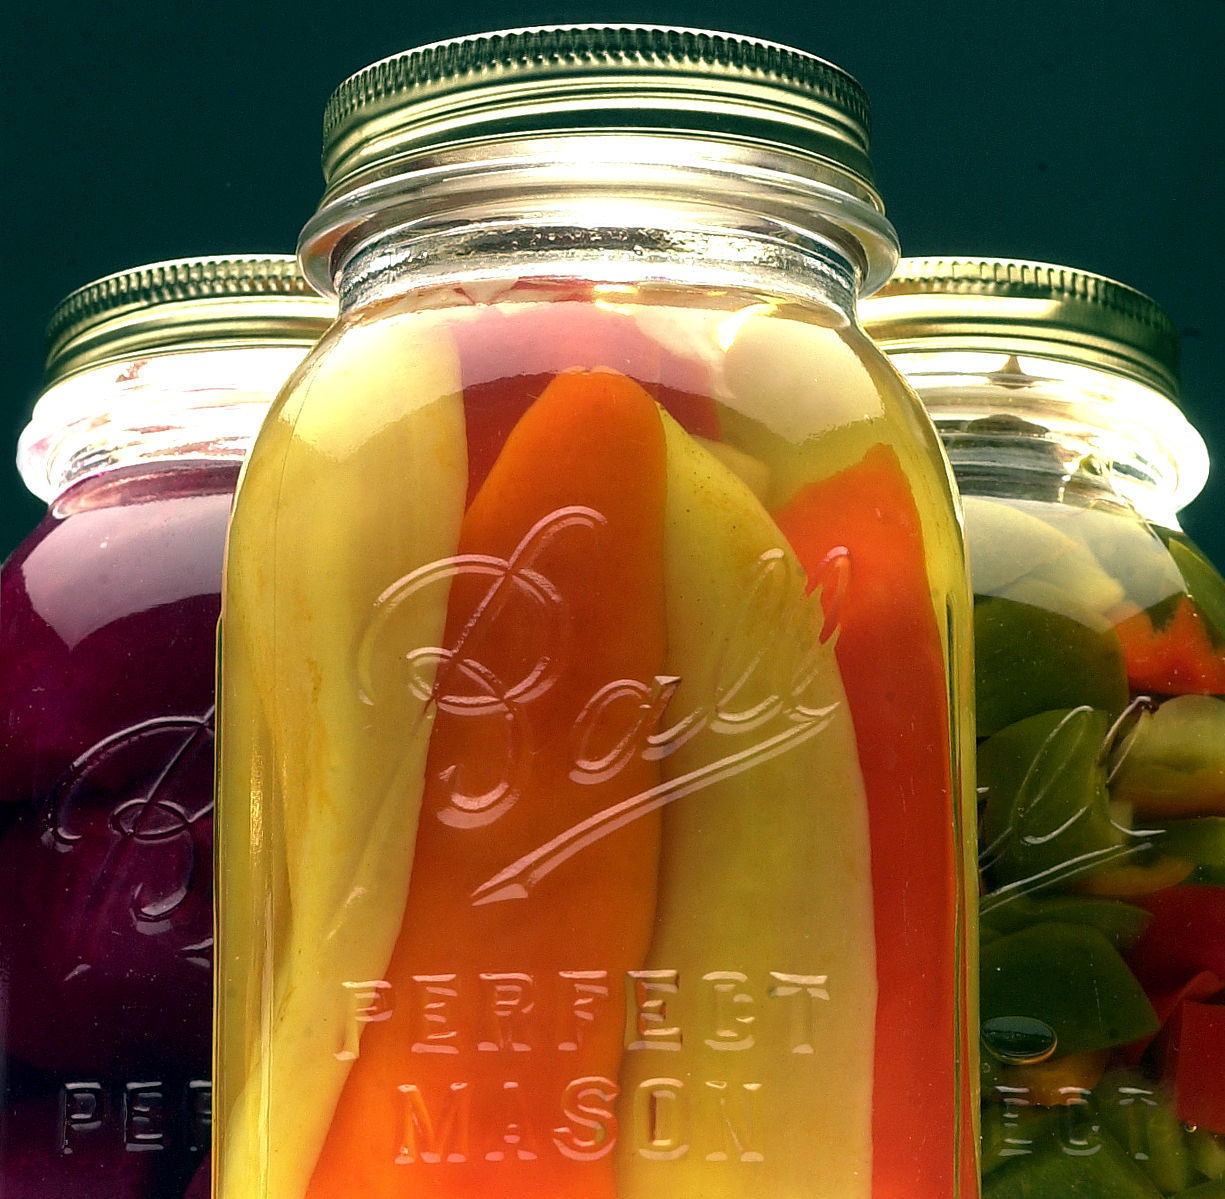 canning jars with product